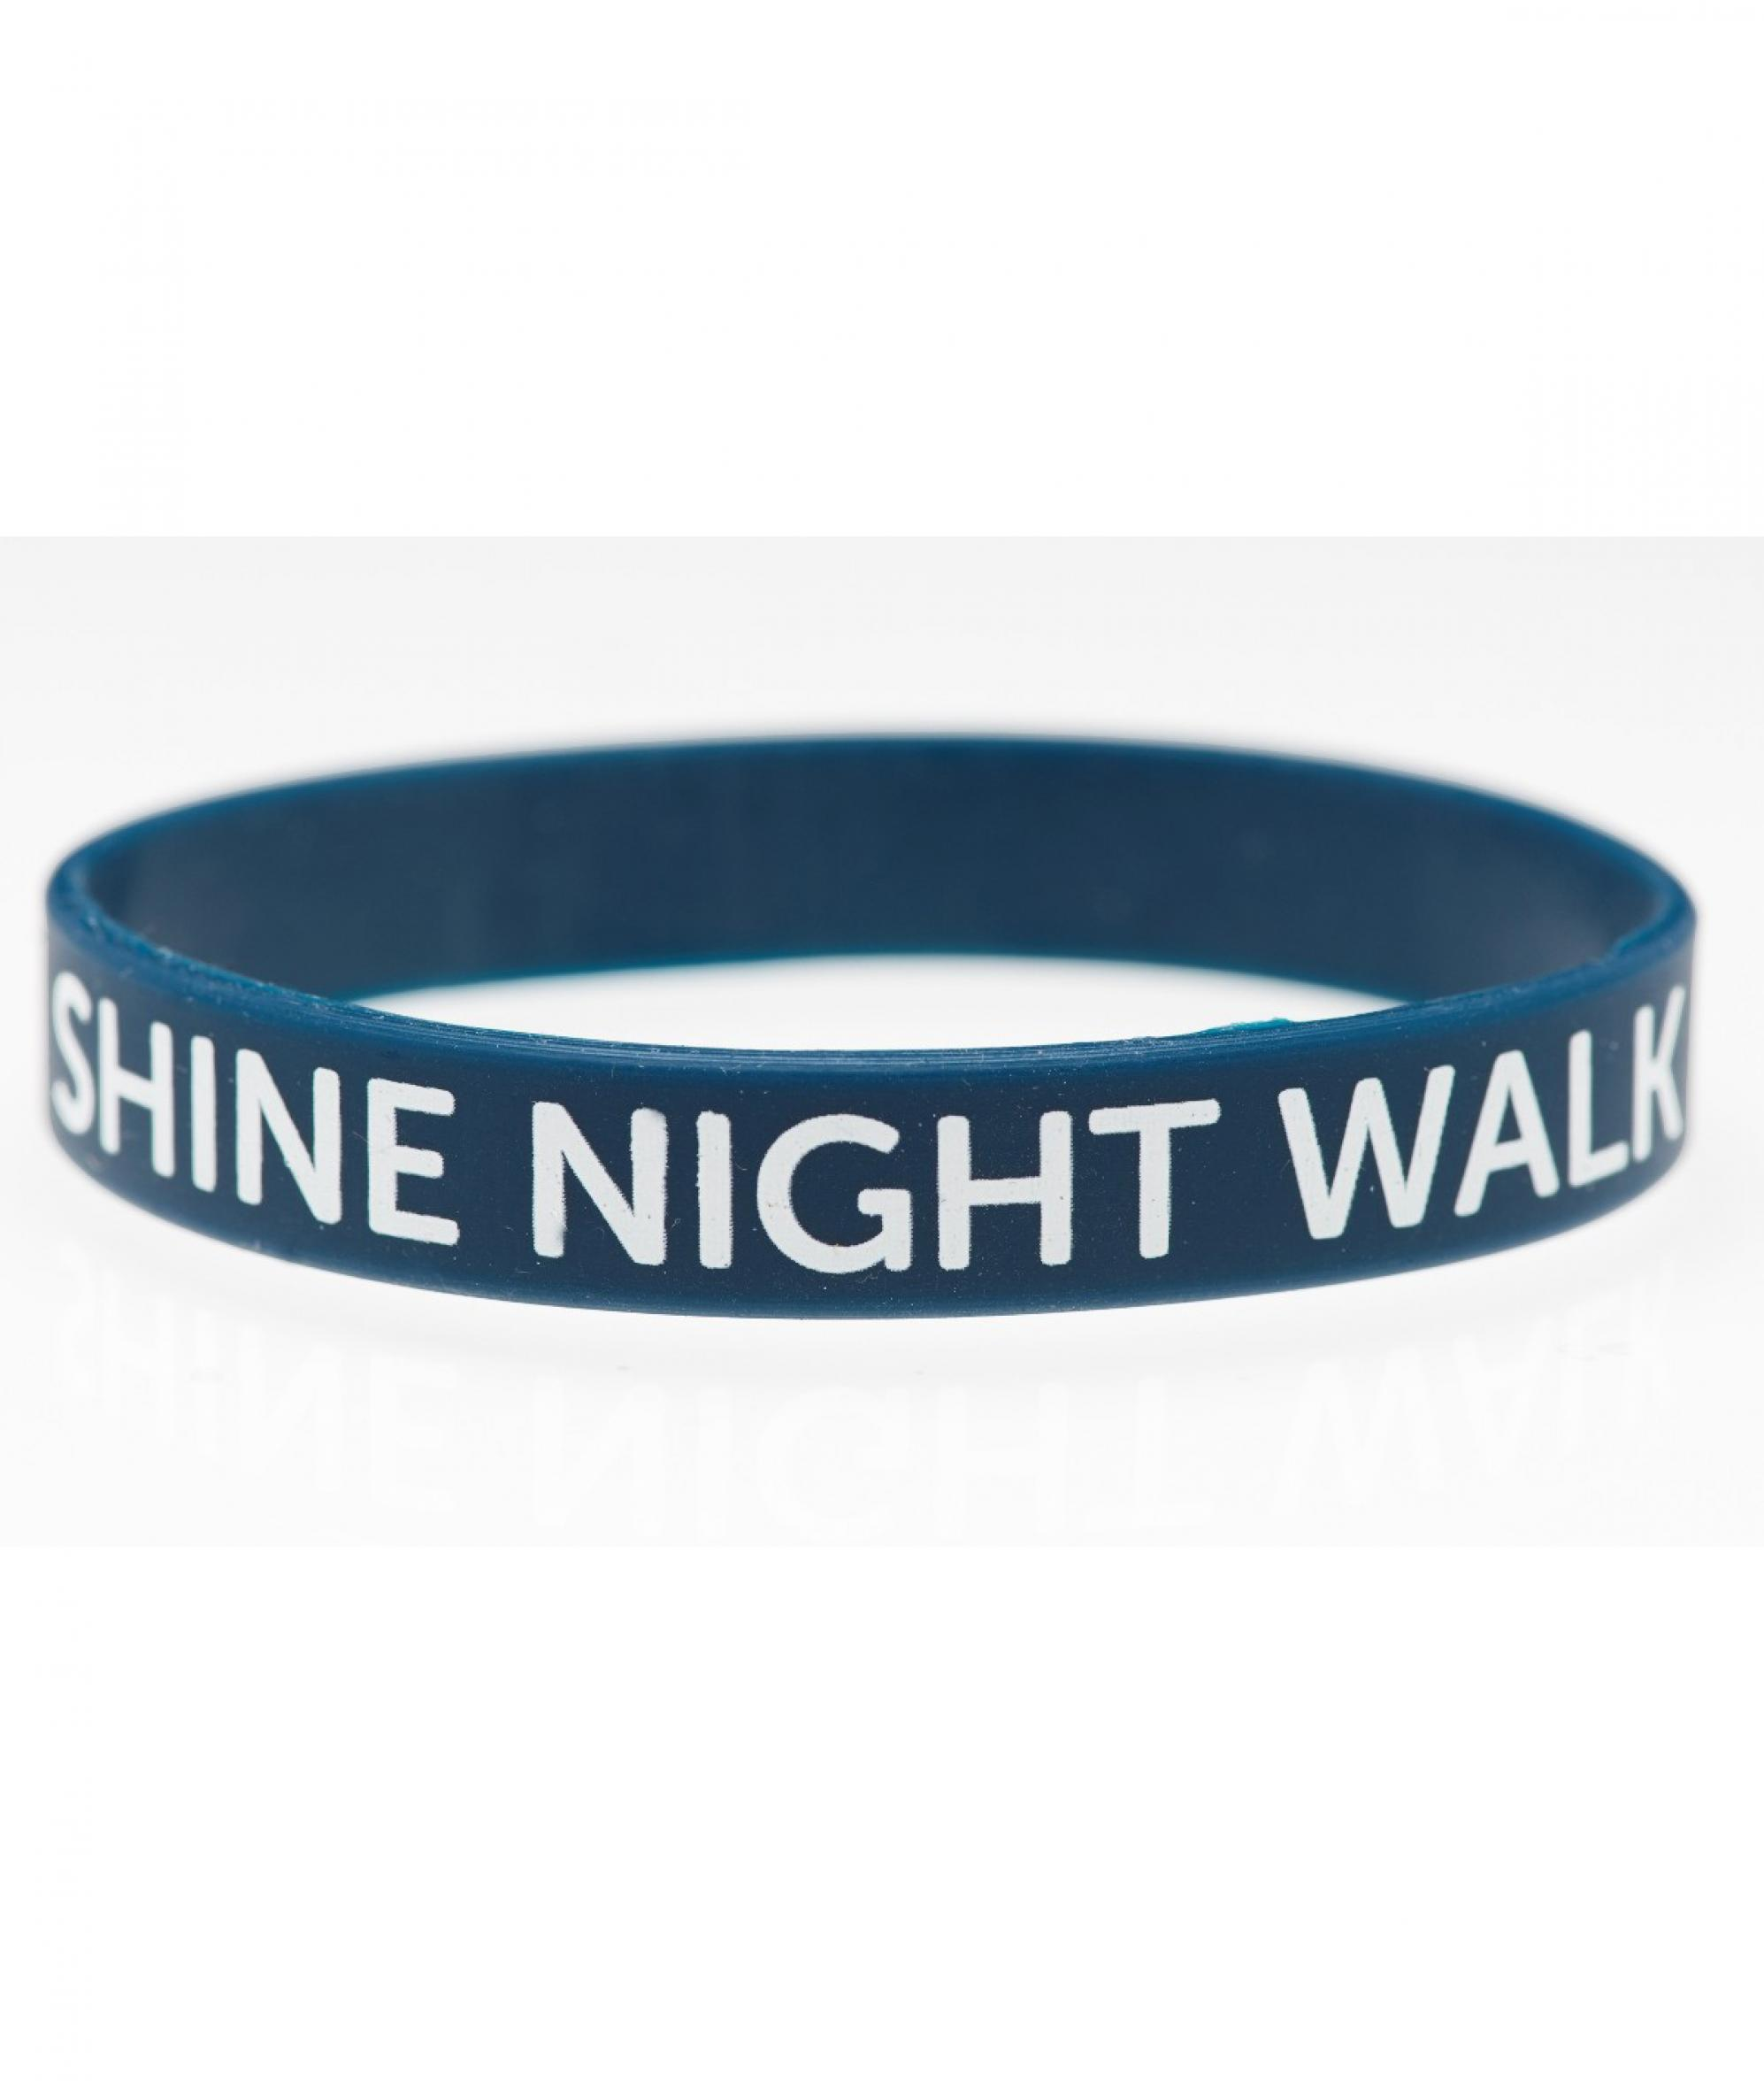 shine night walk wristband cancer research uk online shop. Black Bedroom Furniture Sets. Home Design Ideas